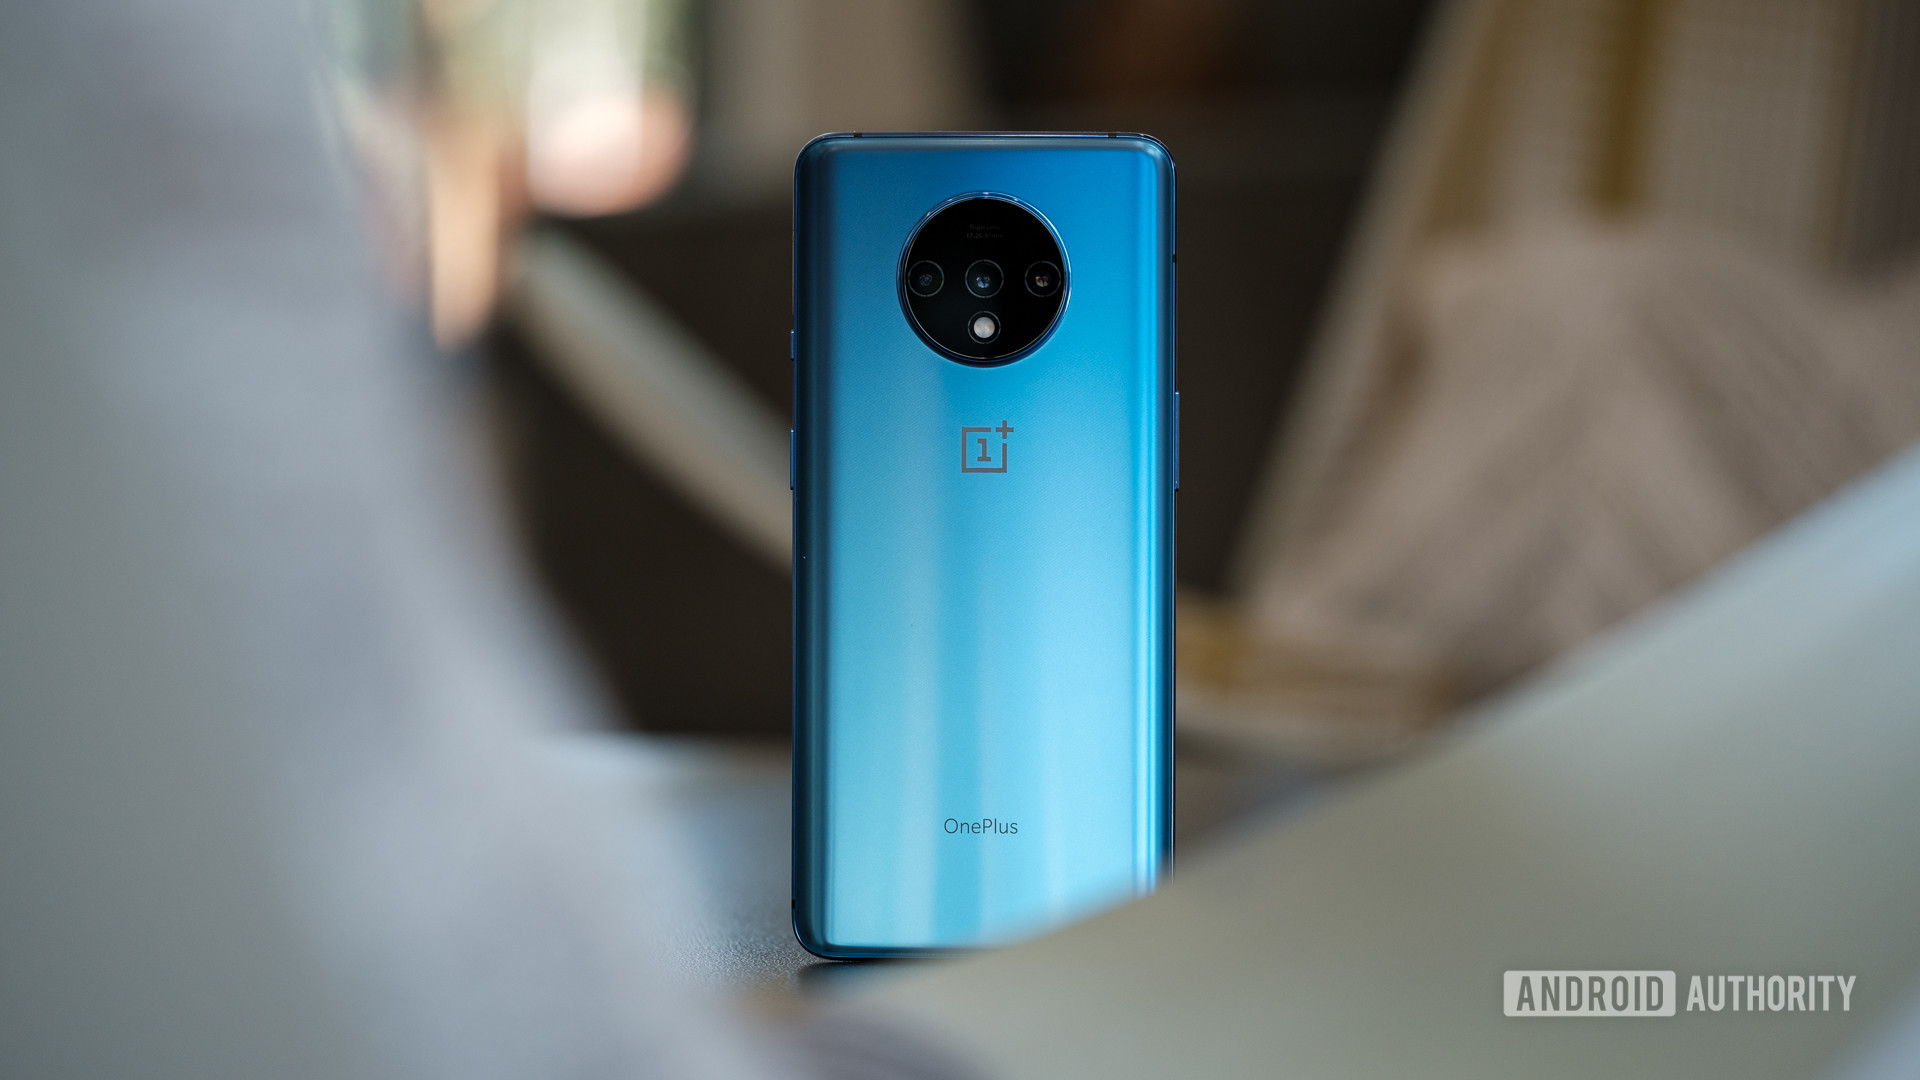 OnePlus 7T - one of the best phablets